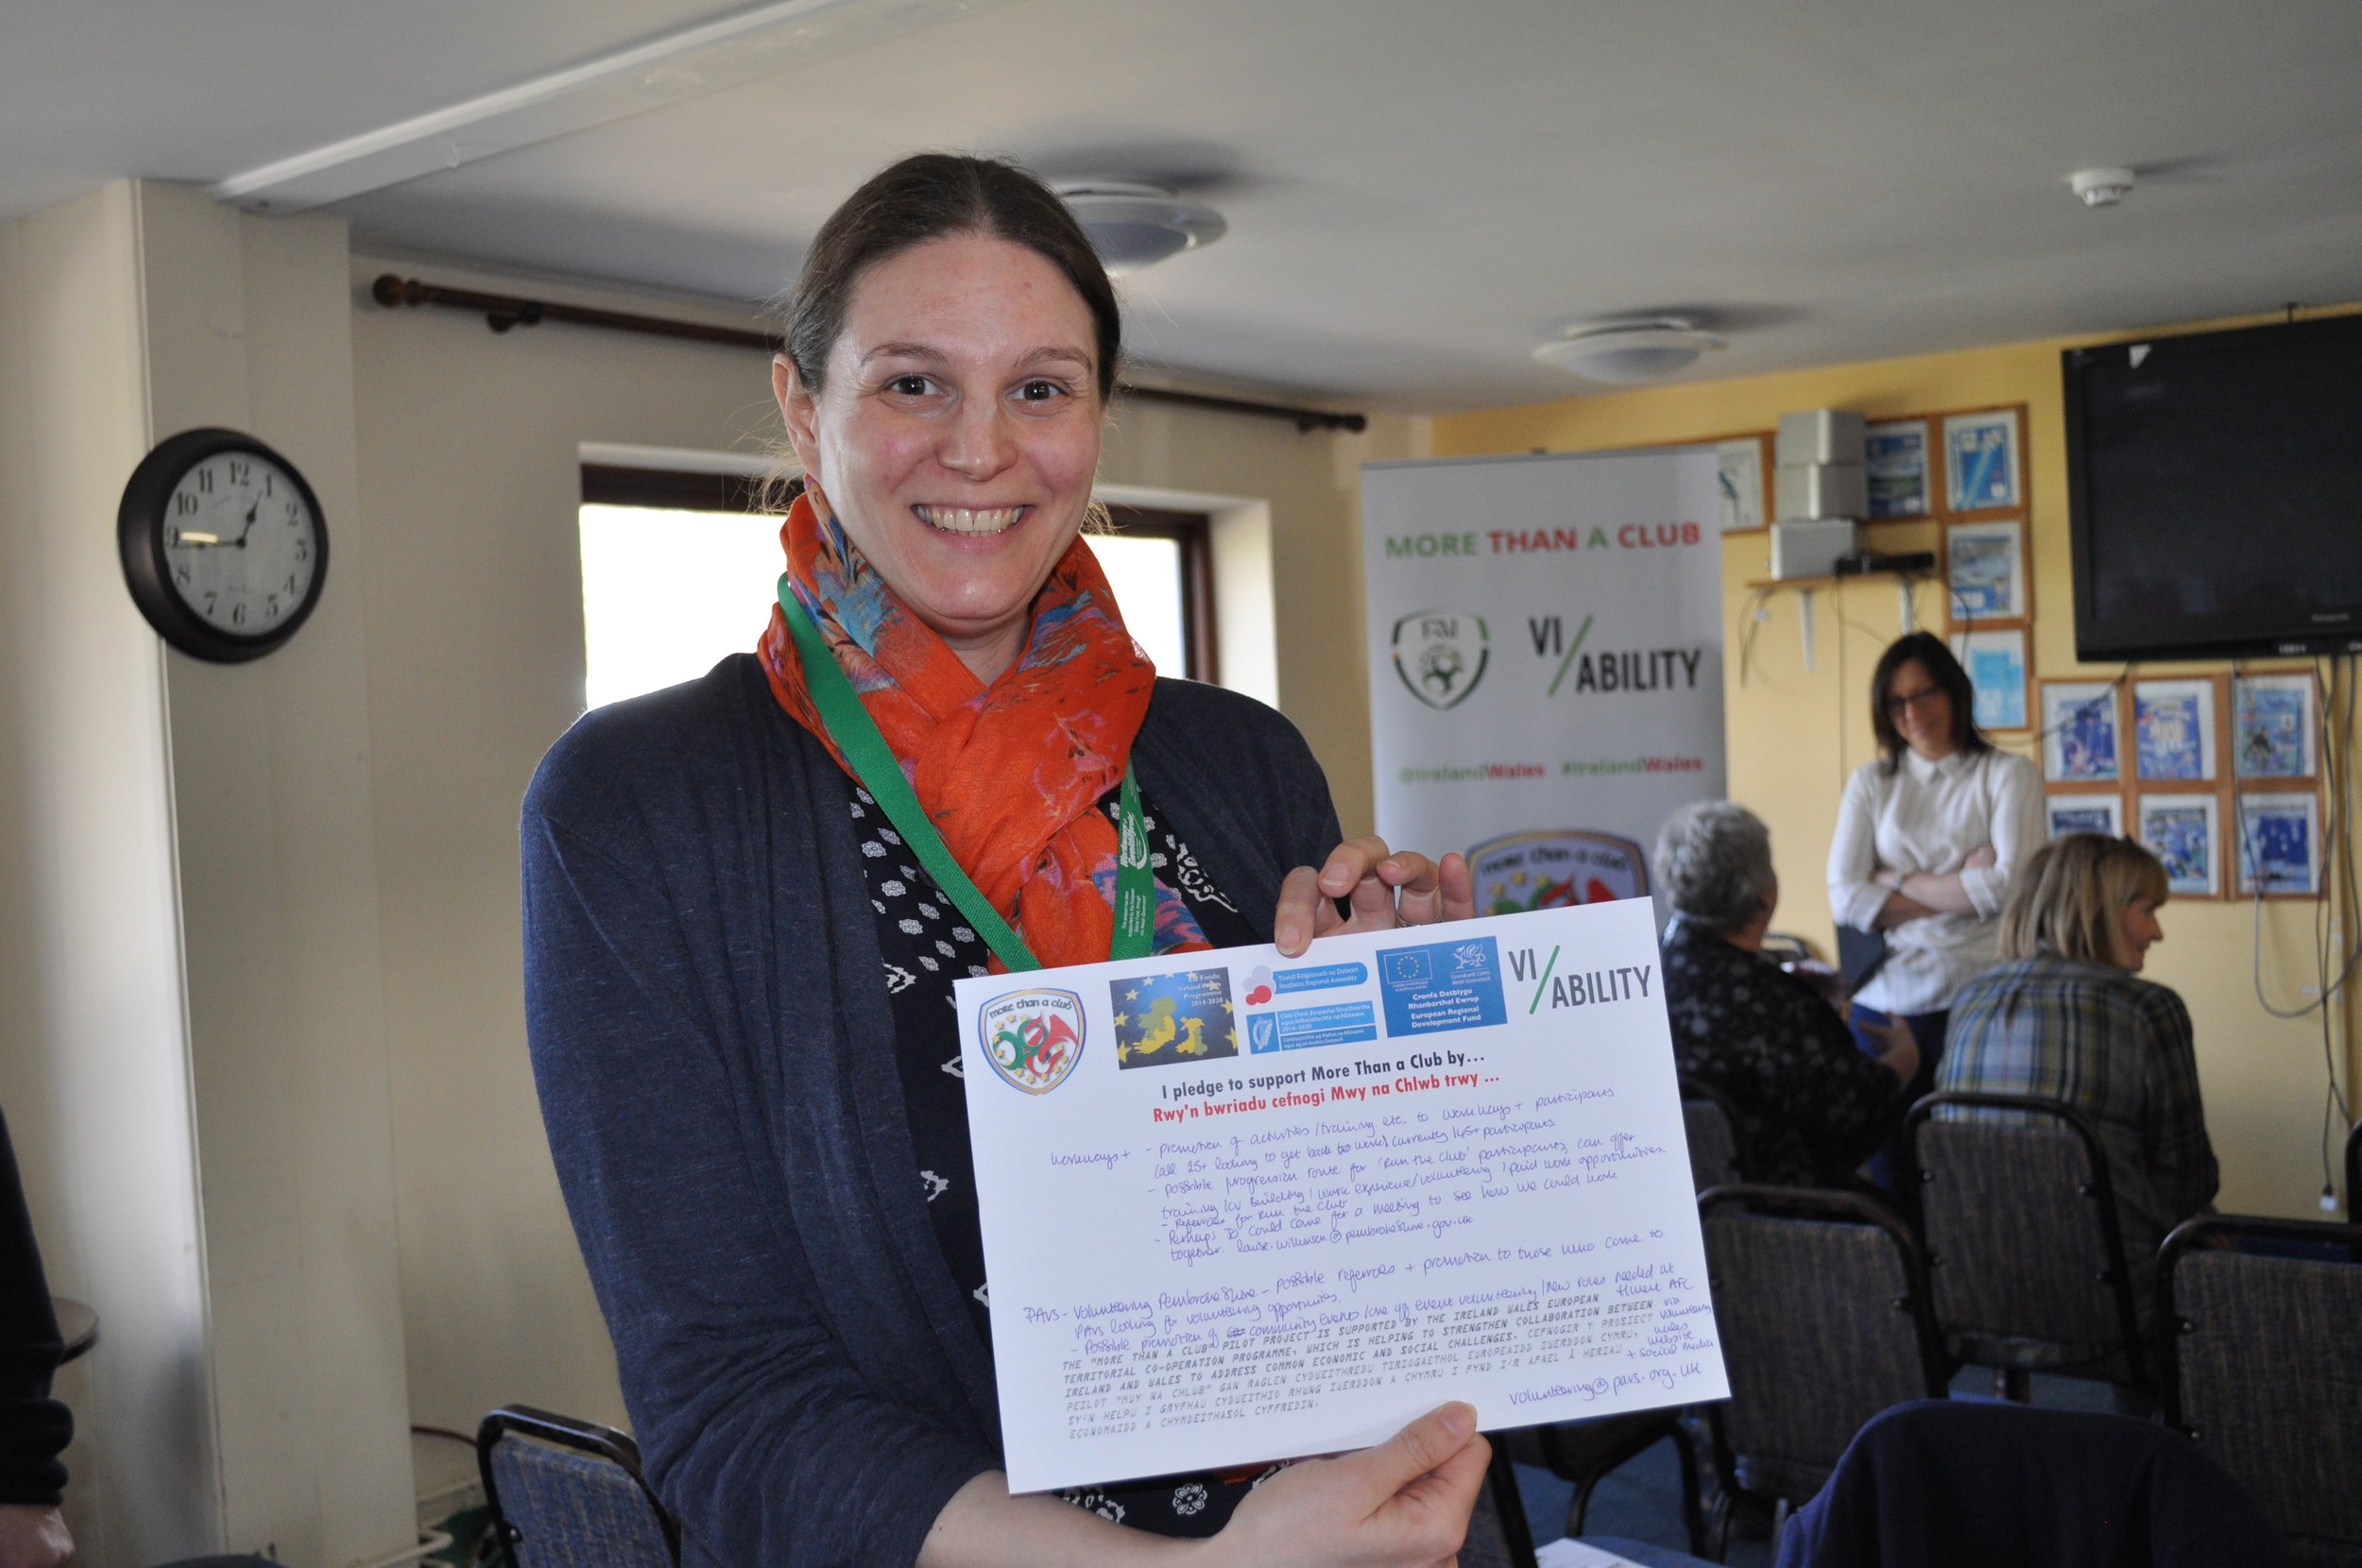 Louise of Workways+ pledging her support to the project